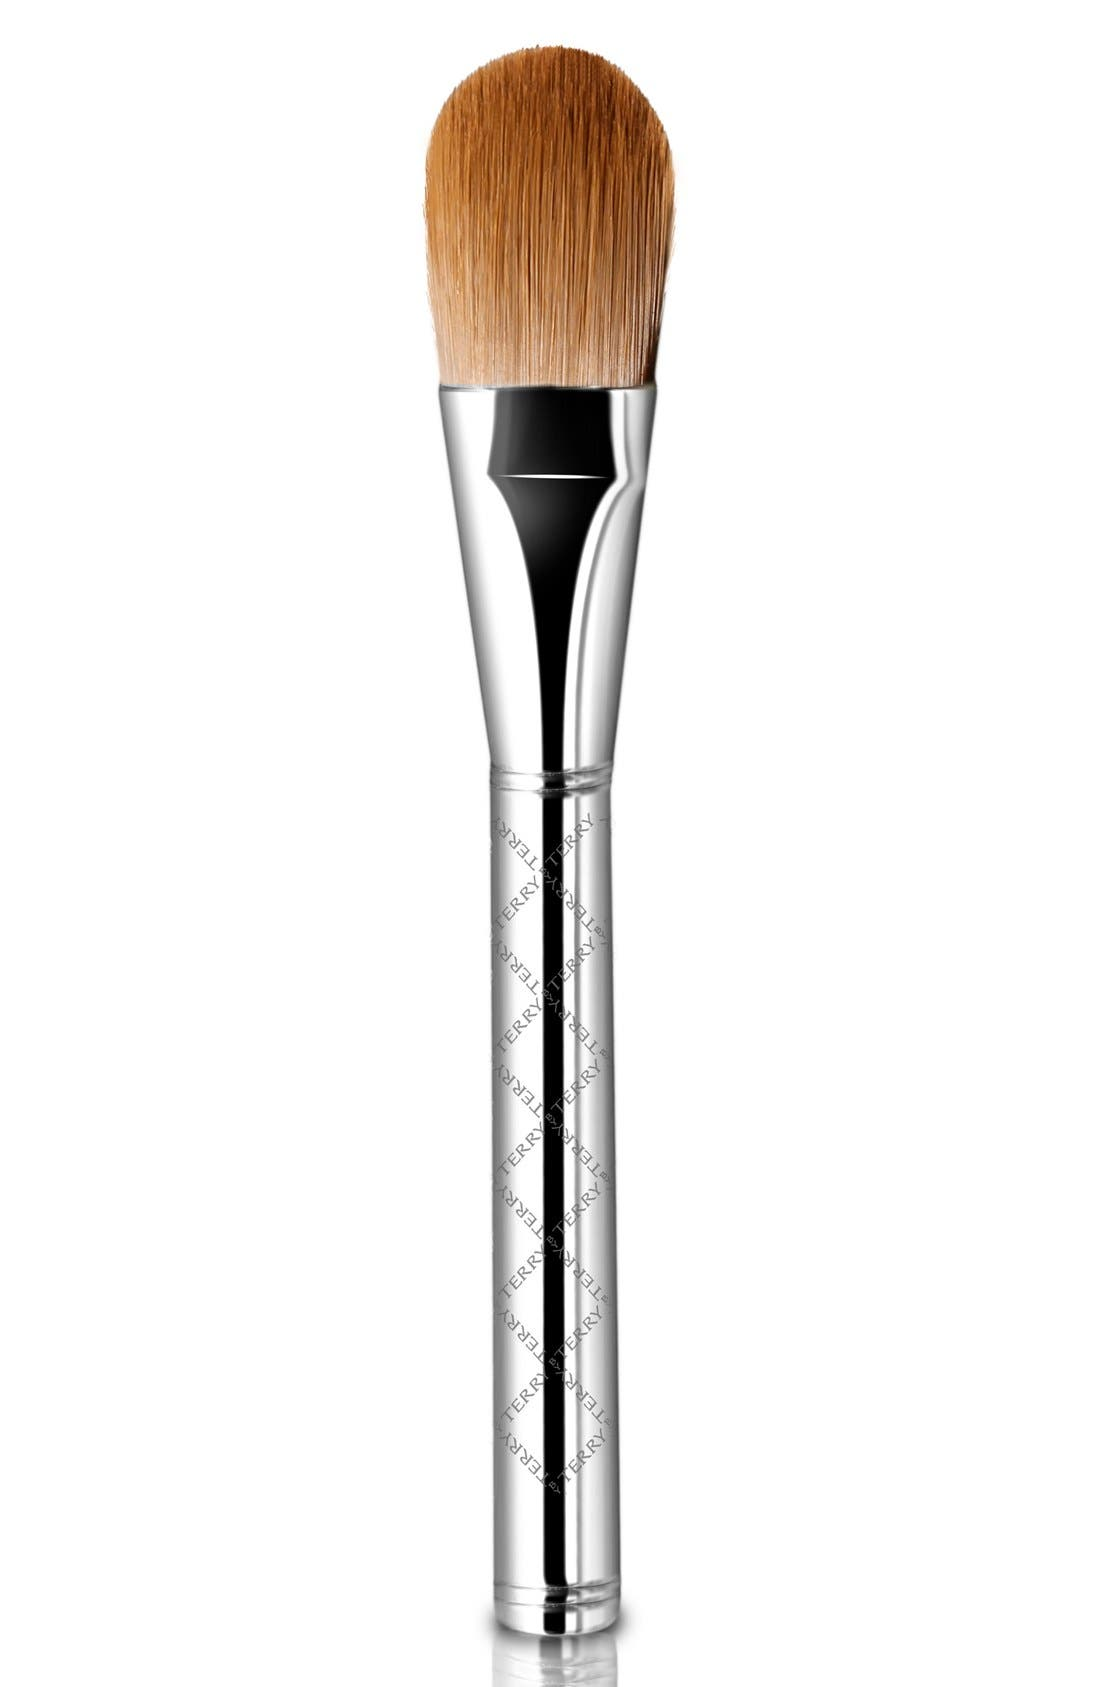 SPACE.NK.apothecary By Terry Precision 6 Foundation Brush,                             Main thumbnail 1, color,                             000